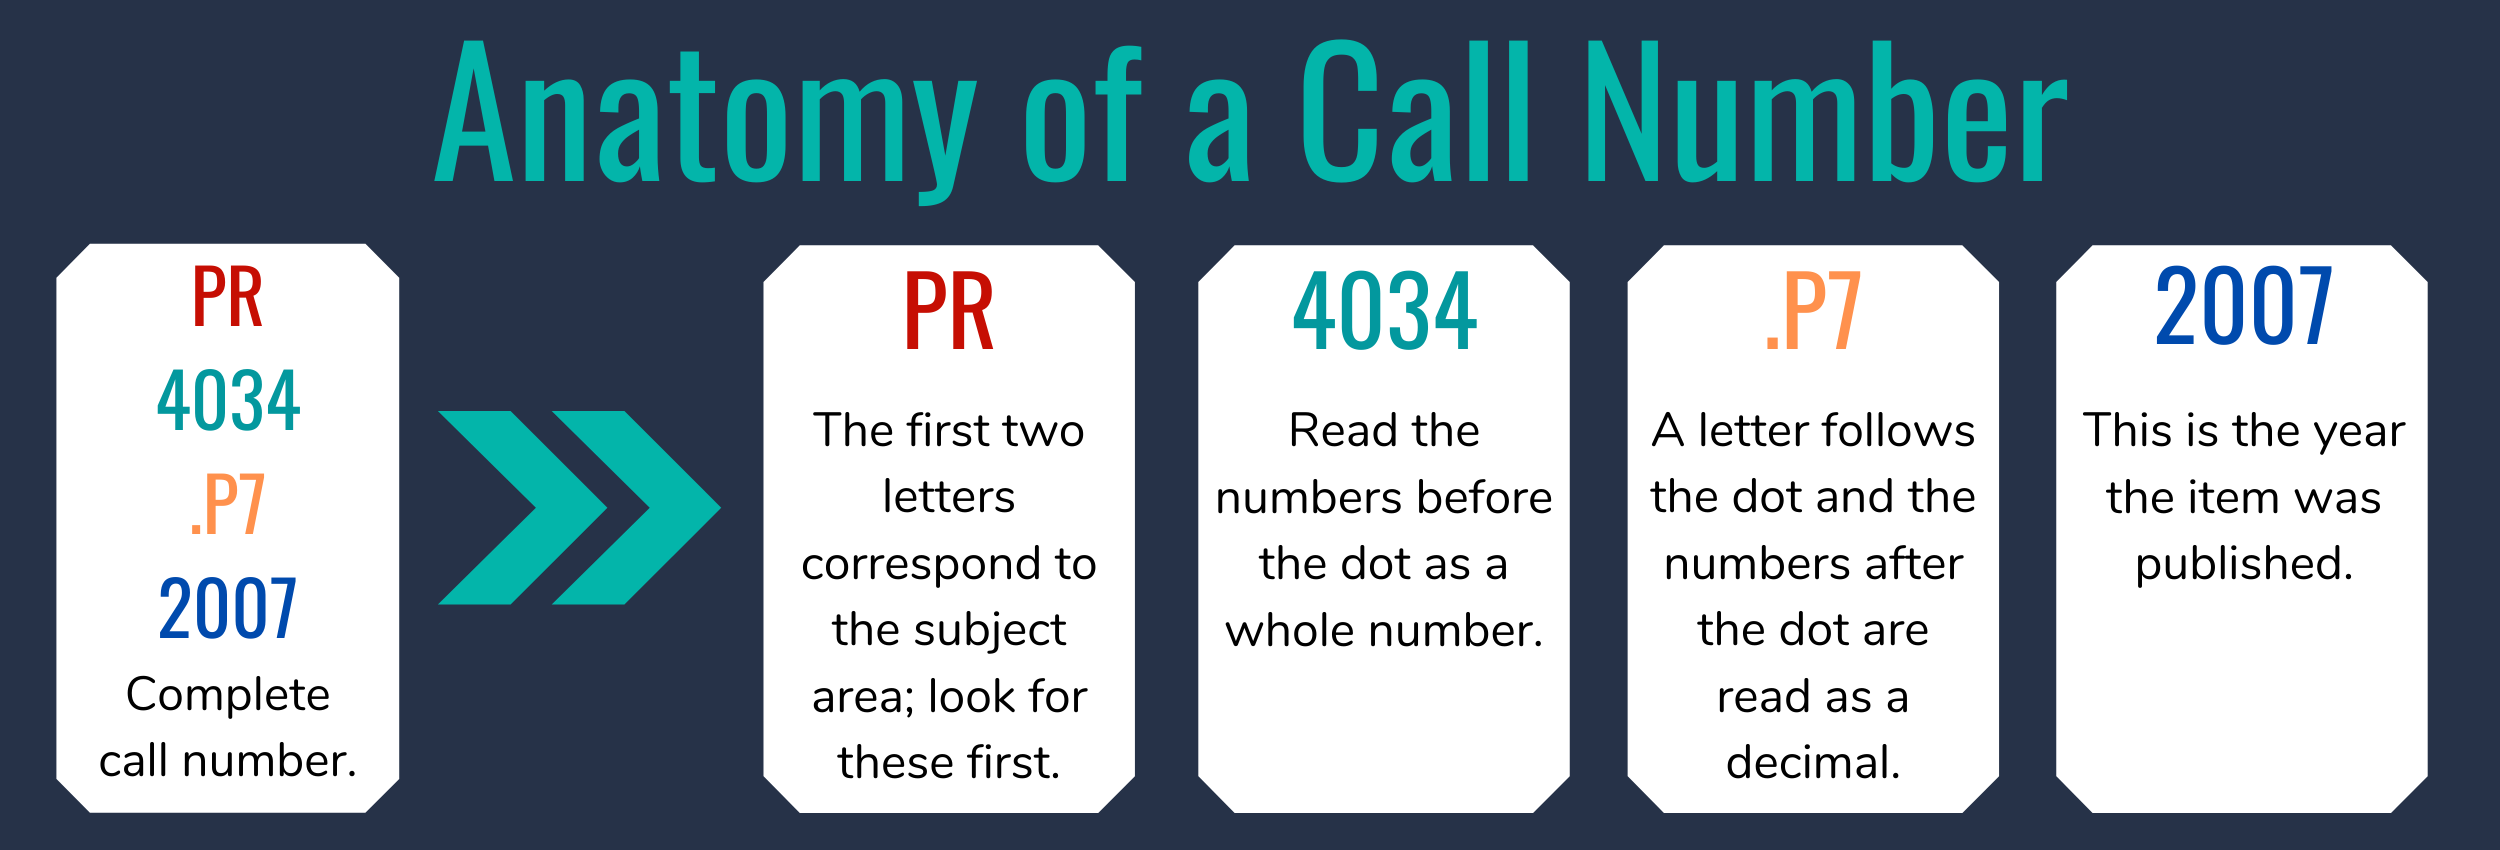 Image analyzing different parts of a call number.